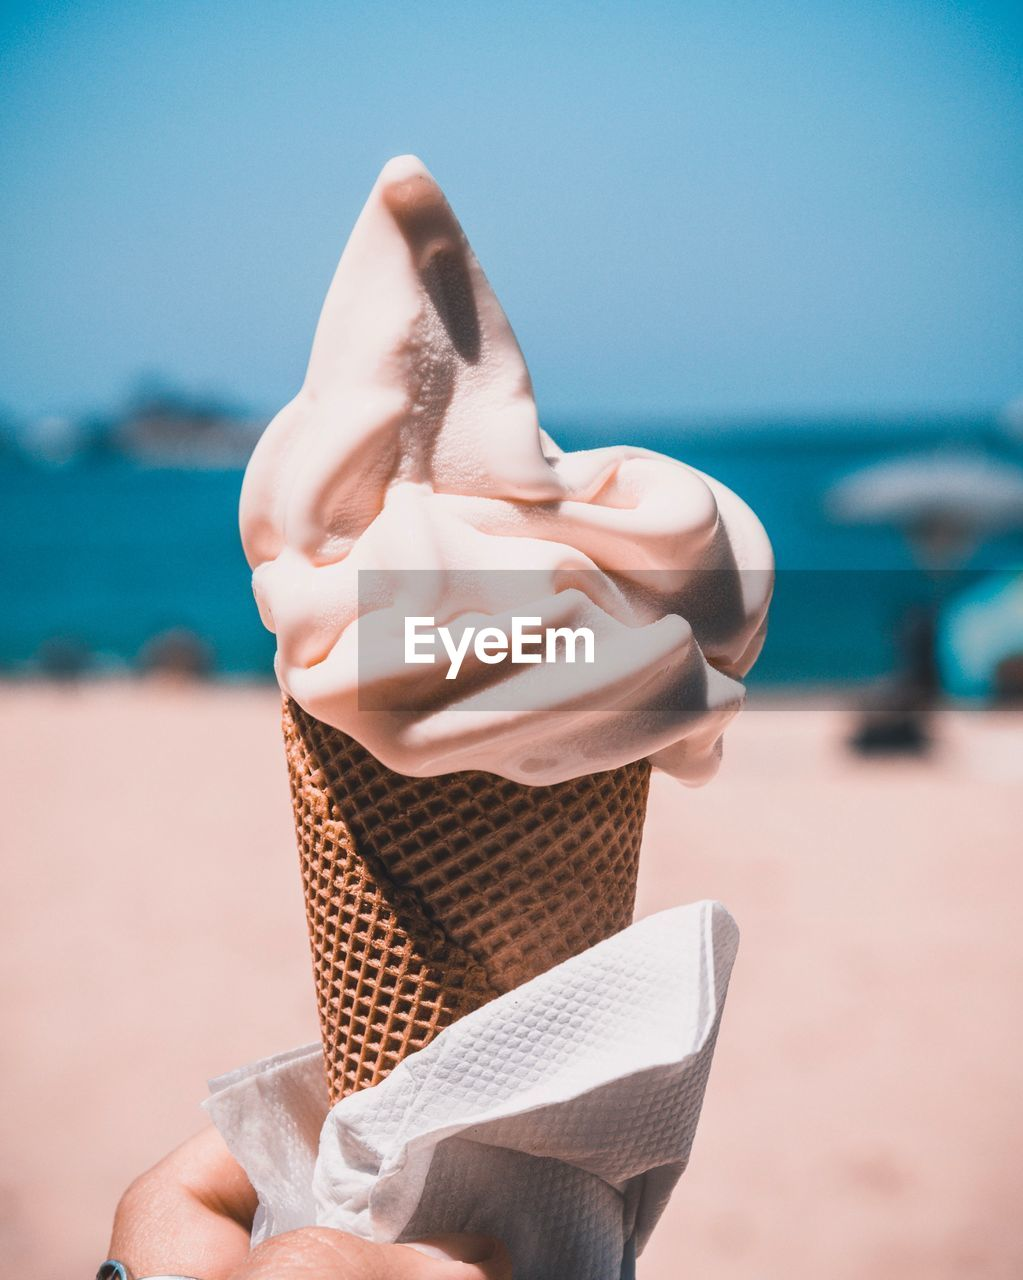 Cropped Hand Of Woman Holding Ice Cream Cone At Beach Against Clear Blue Sky